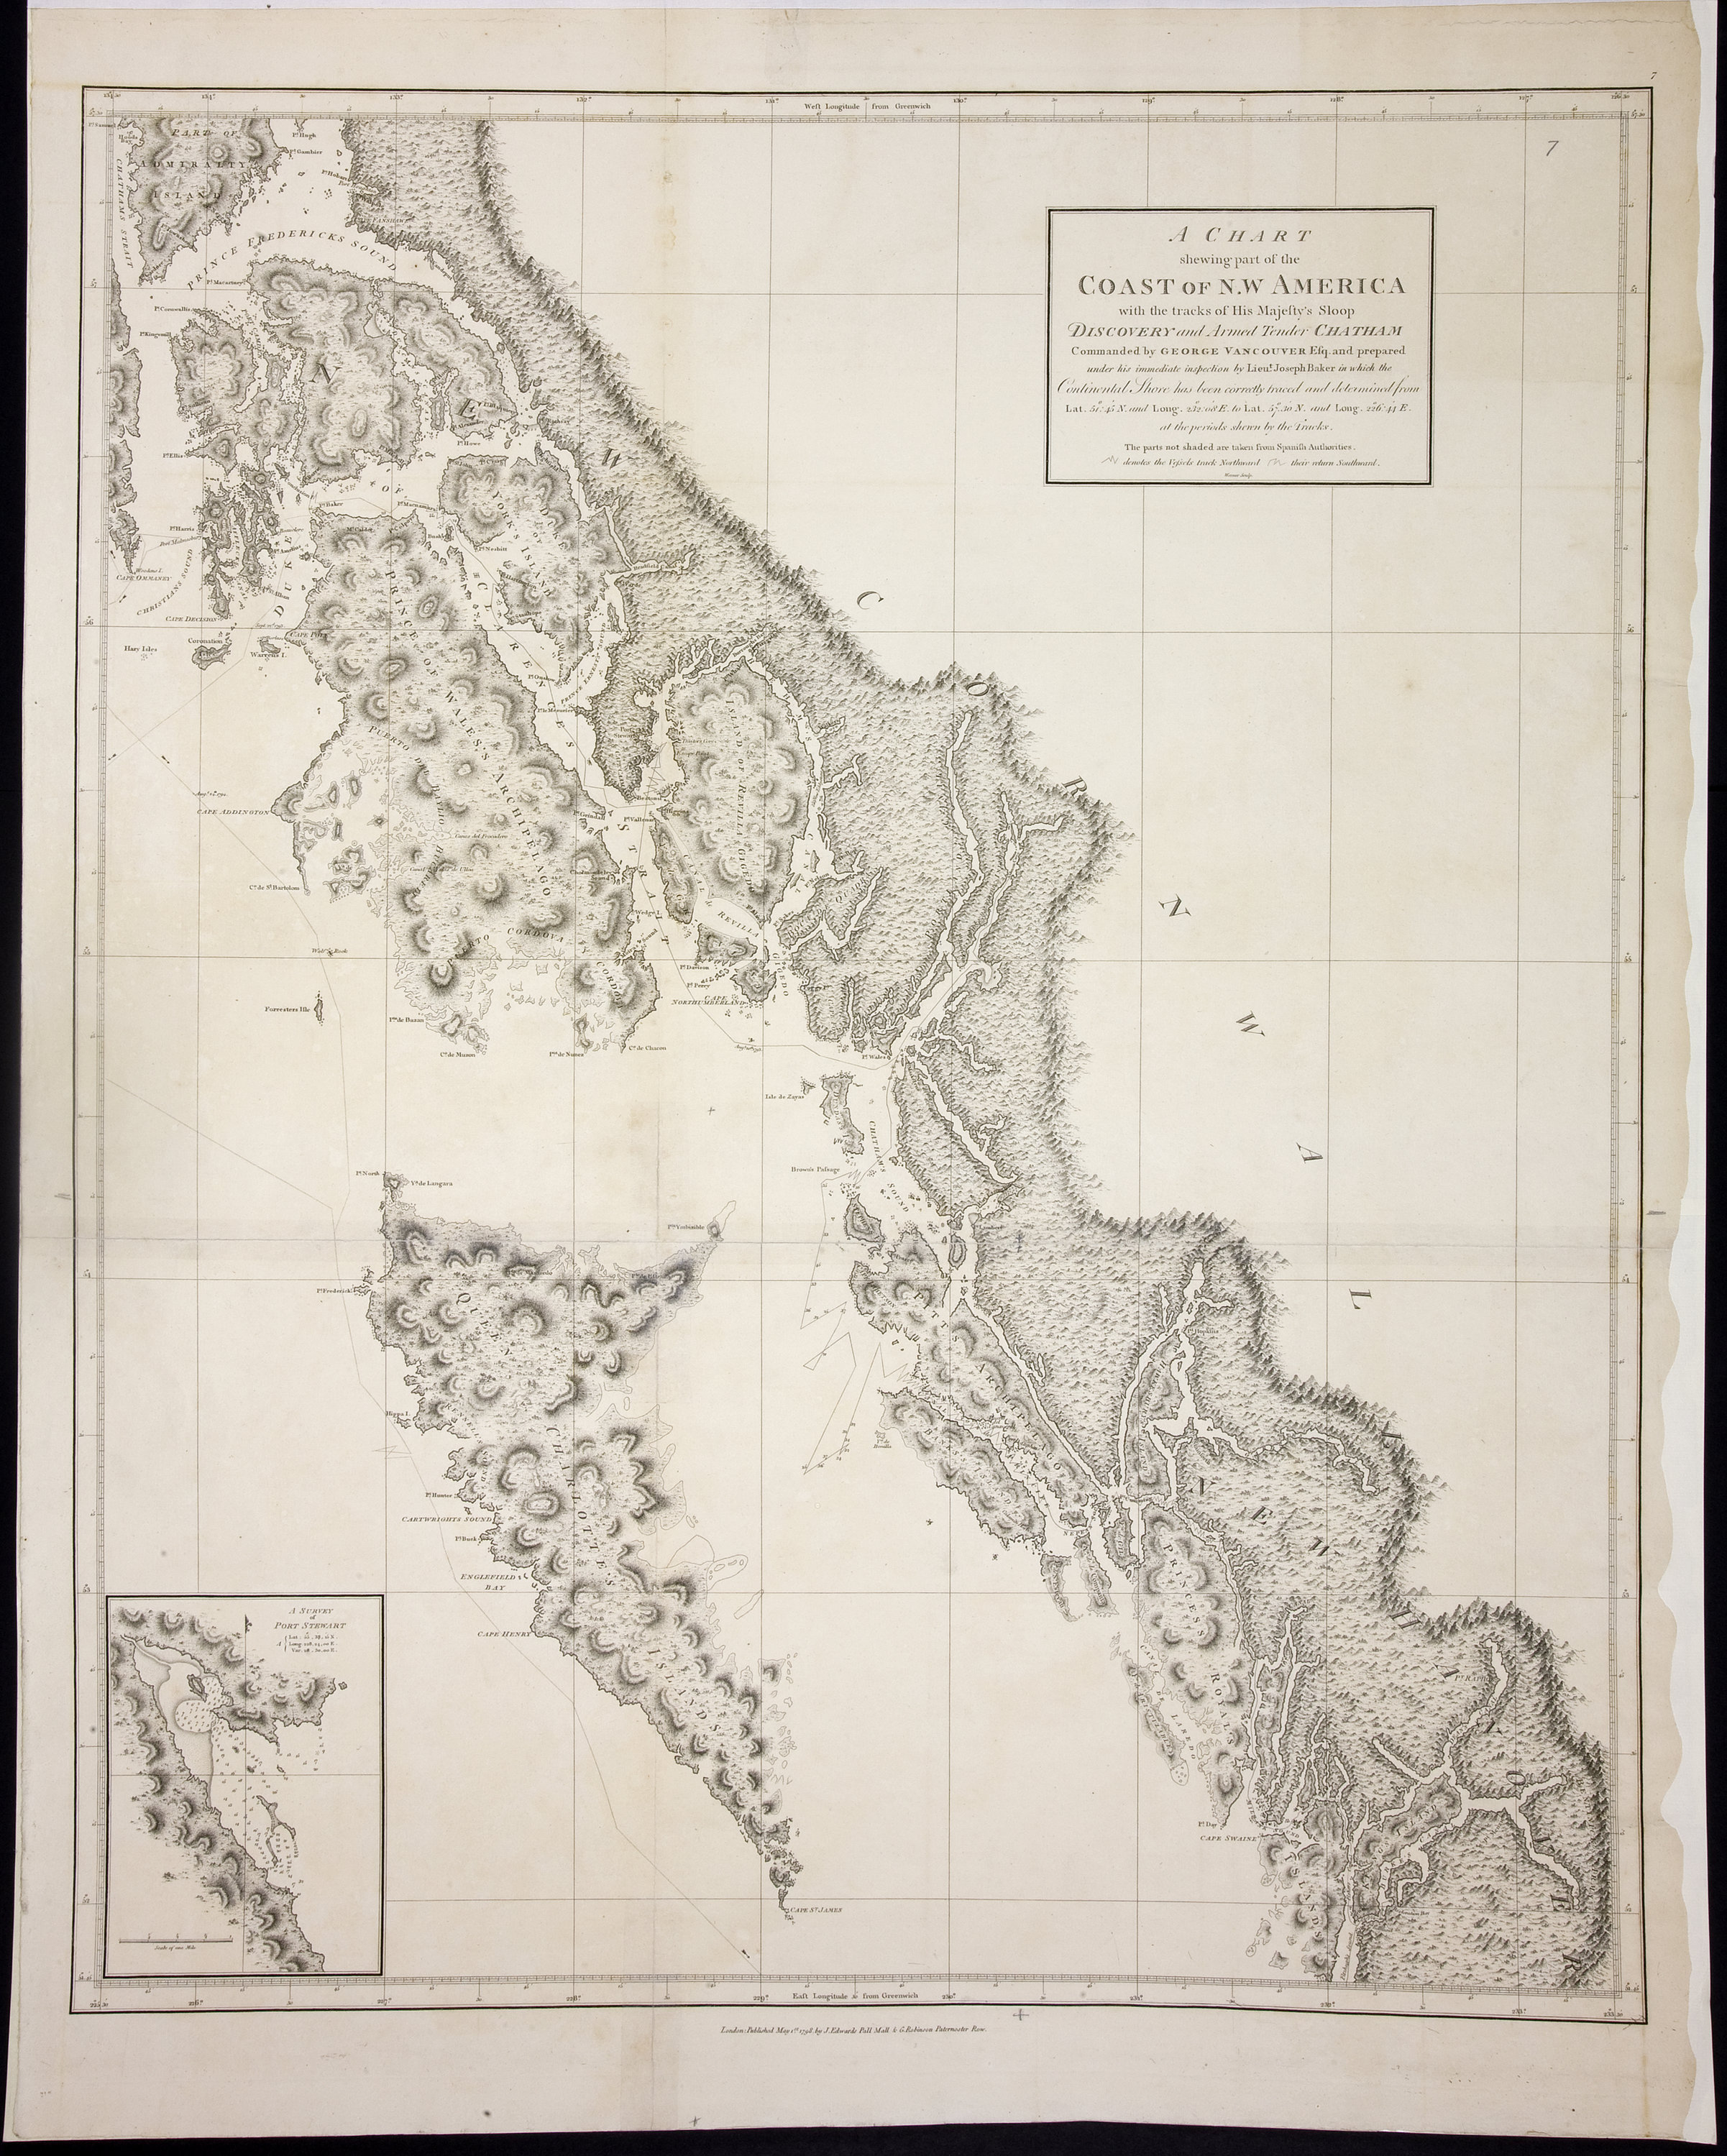 Chart shewing part of the Coast of N.W. America with the tracks of His Majesty's Sloop Discovery and Armed Tender Chatham, Commanded by George Vancouver Esq. and prepared under his immediate inspection by Lieut. Joseph Baker in which the continental shore has been correctly traced and determined from lat. 51 45ʹ N. and long. 232 08ʹ E. to lat. 57 30ʹ N. and long. 226 44ʹ E. at the periods shewn by the tracks ; Warner, sculp.